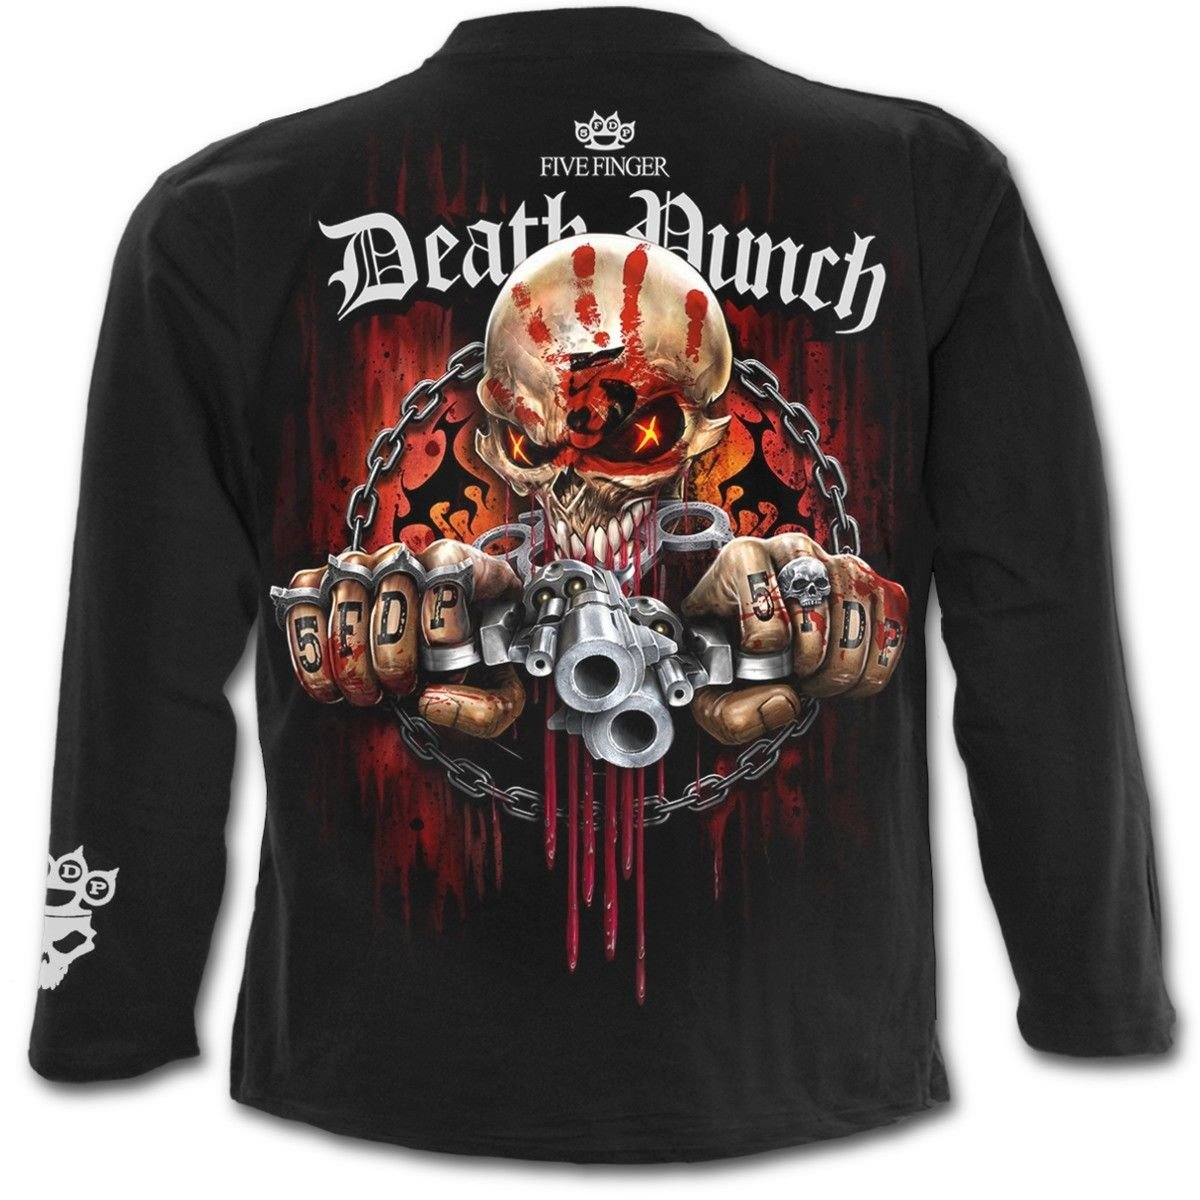 e8499535252 Amazon.com  Five Finger Death Punch Assassin - Mens Longsleeve T-Shirt   Clothing